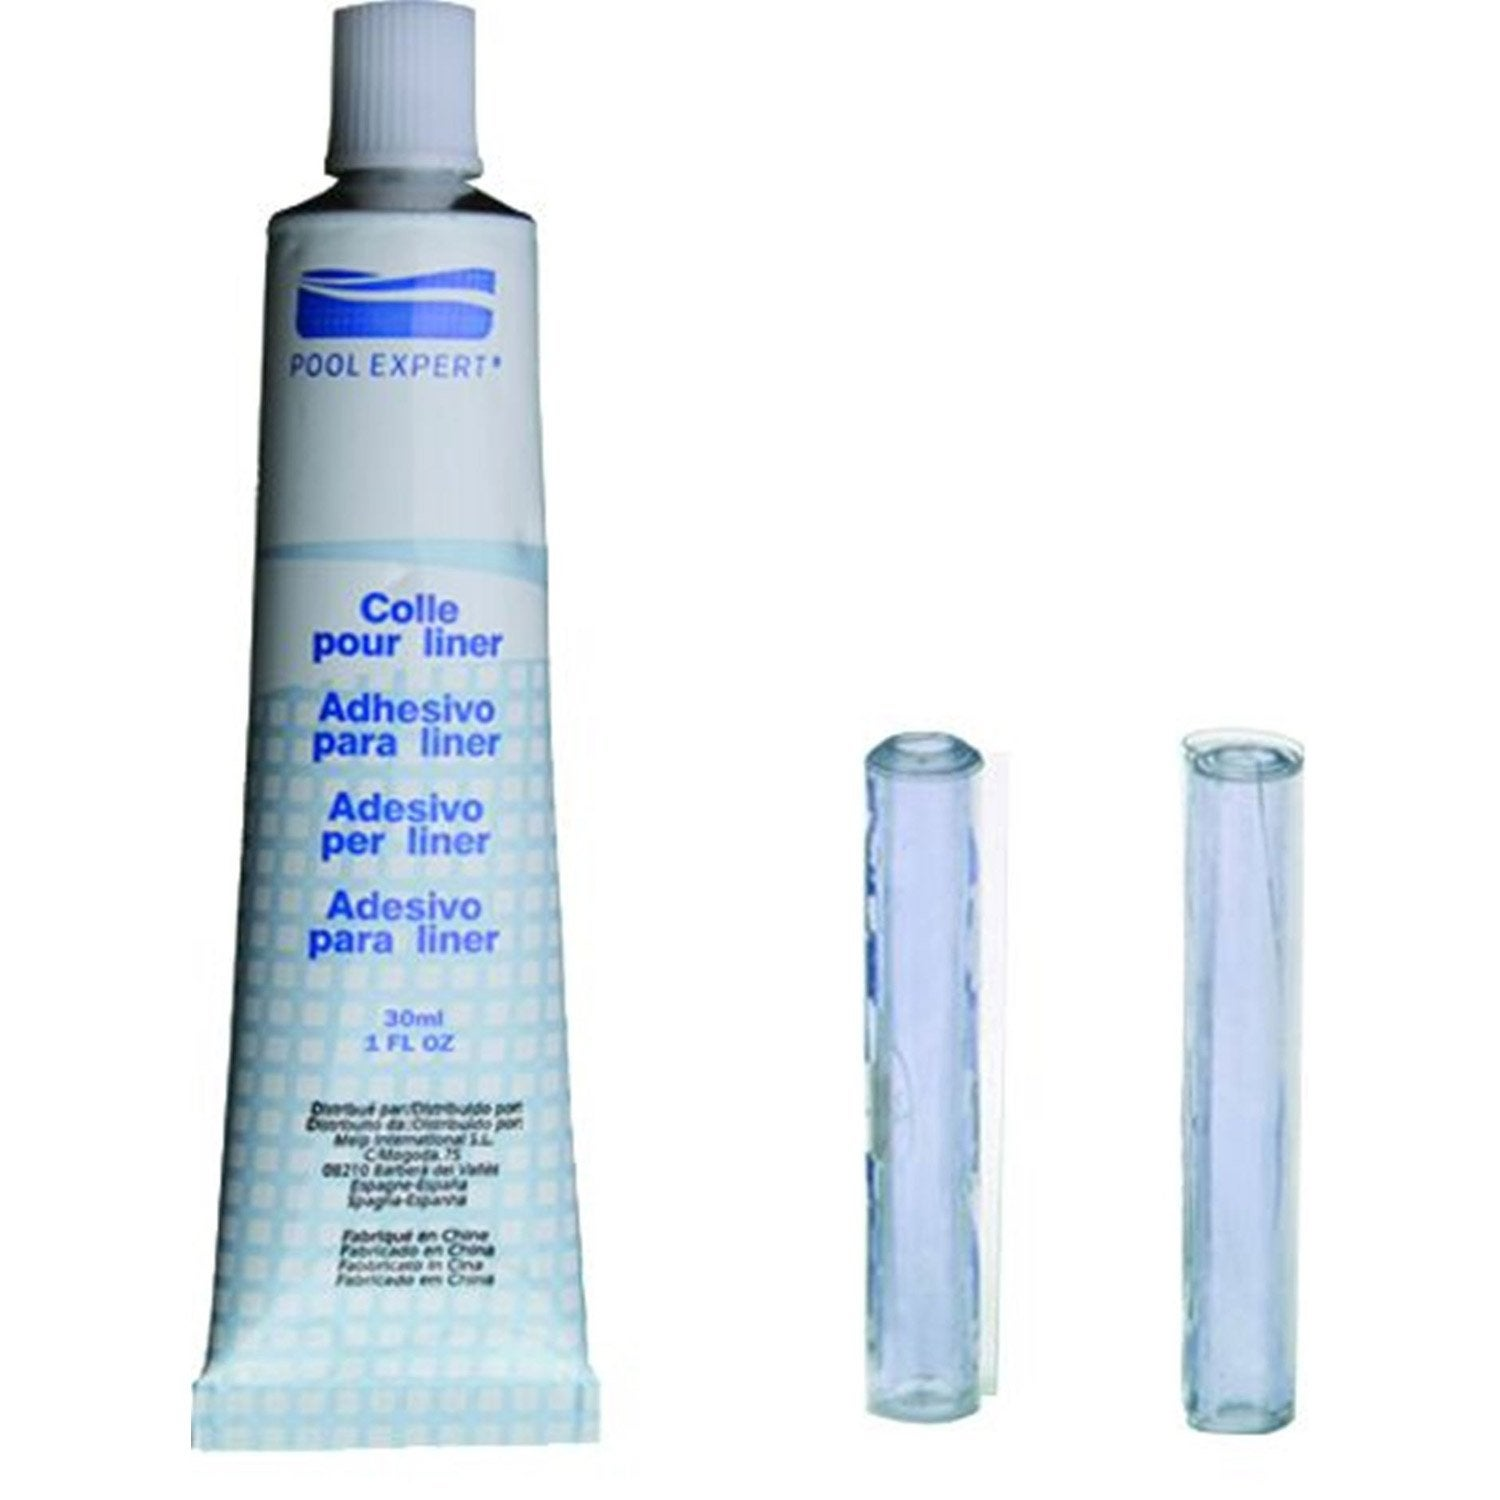 Kit de r paration piscine gre kit reparation liner tube - Kit reparation baignoire acrylique leroy merlin ...